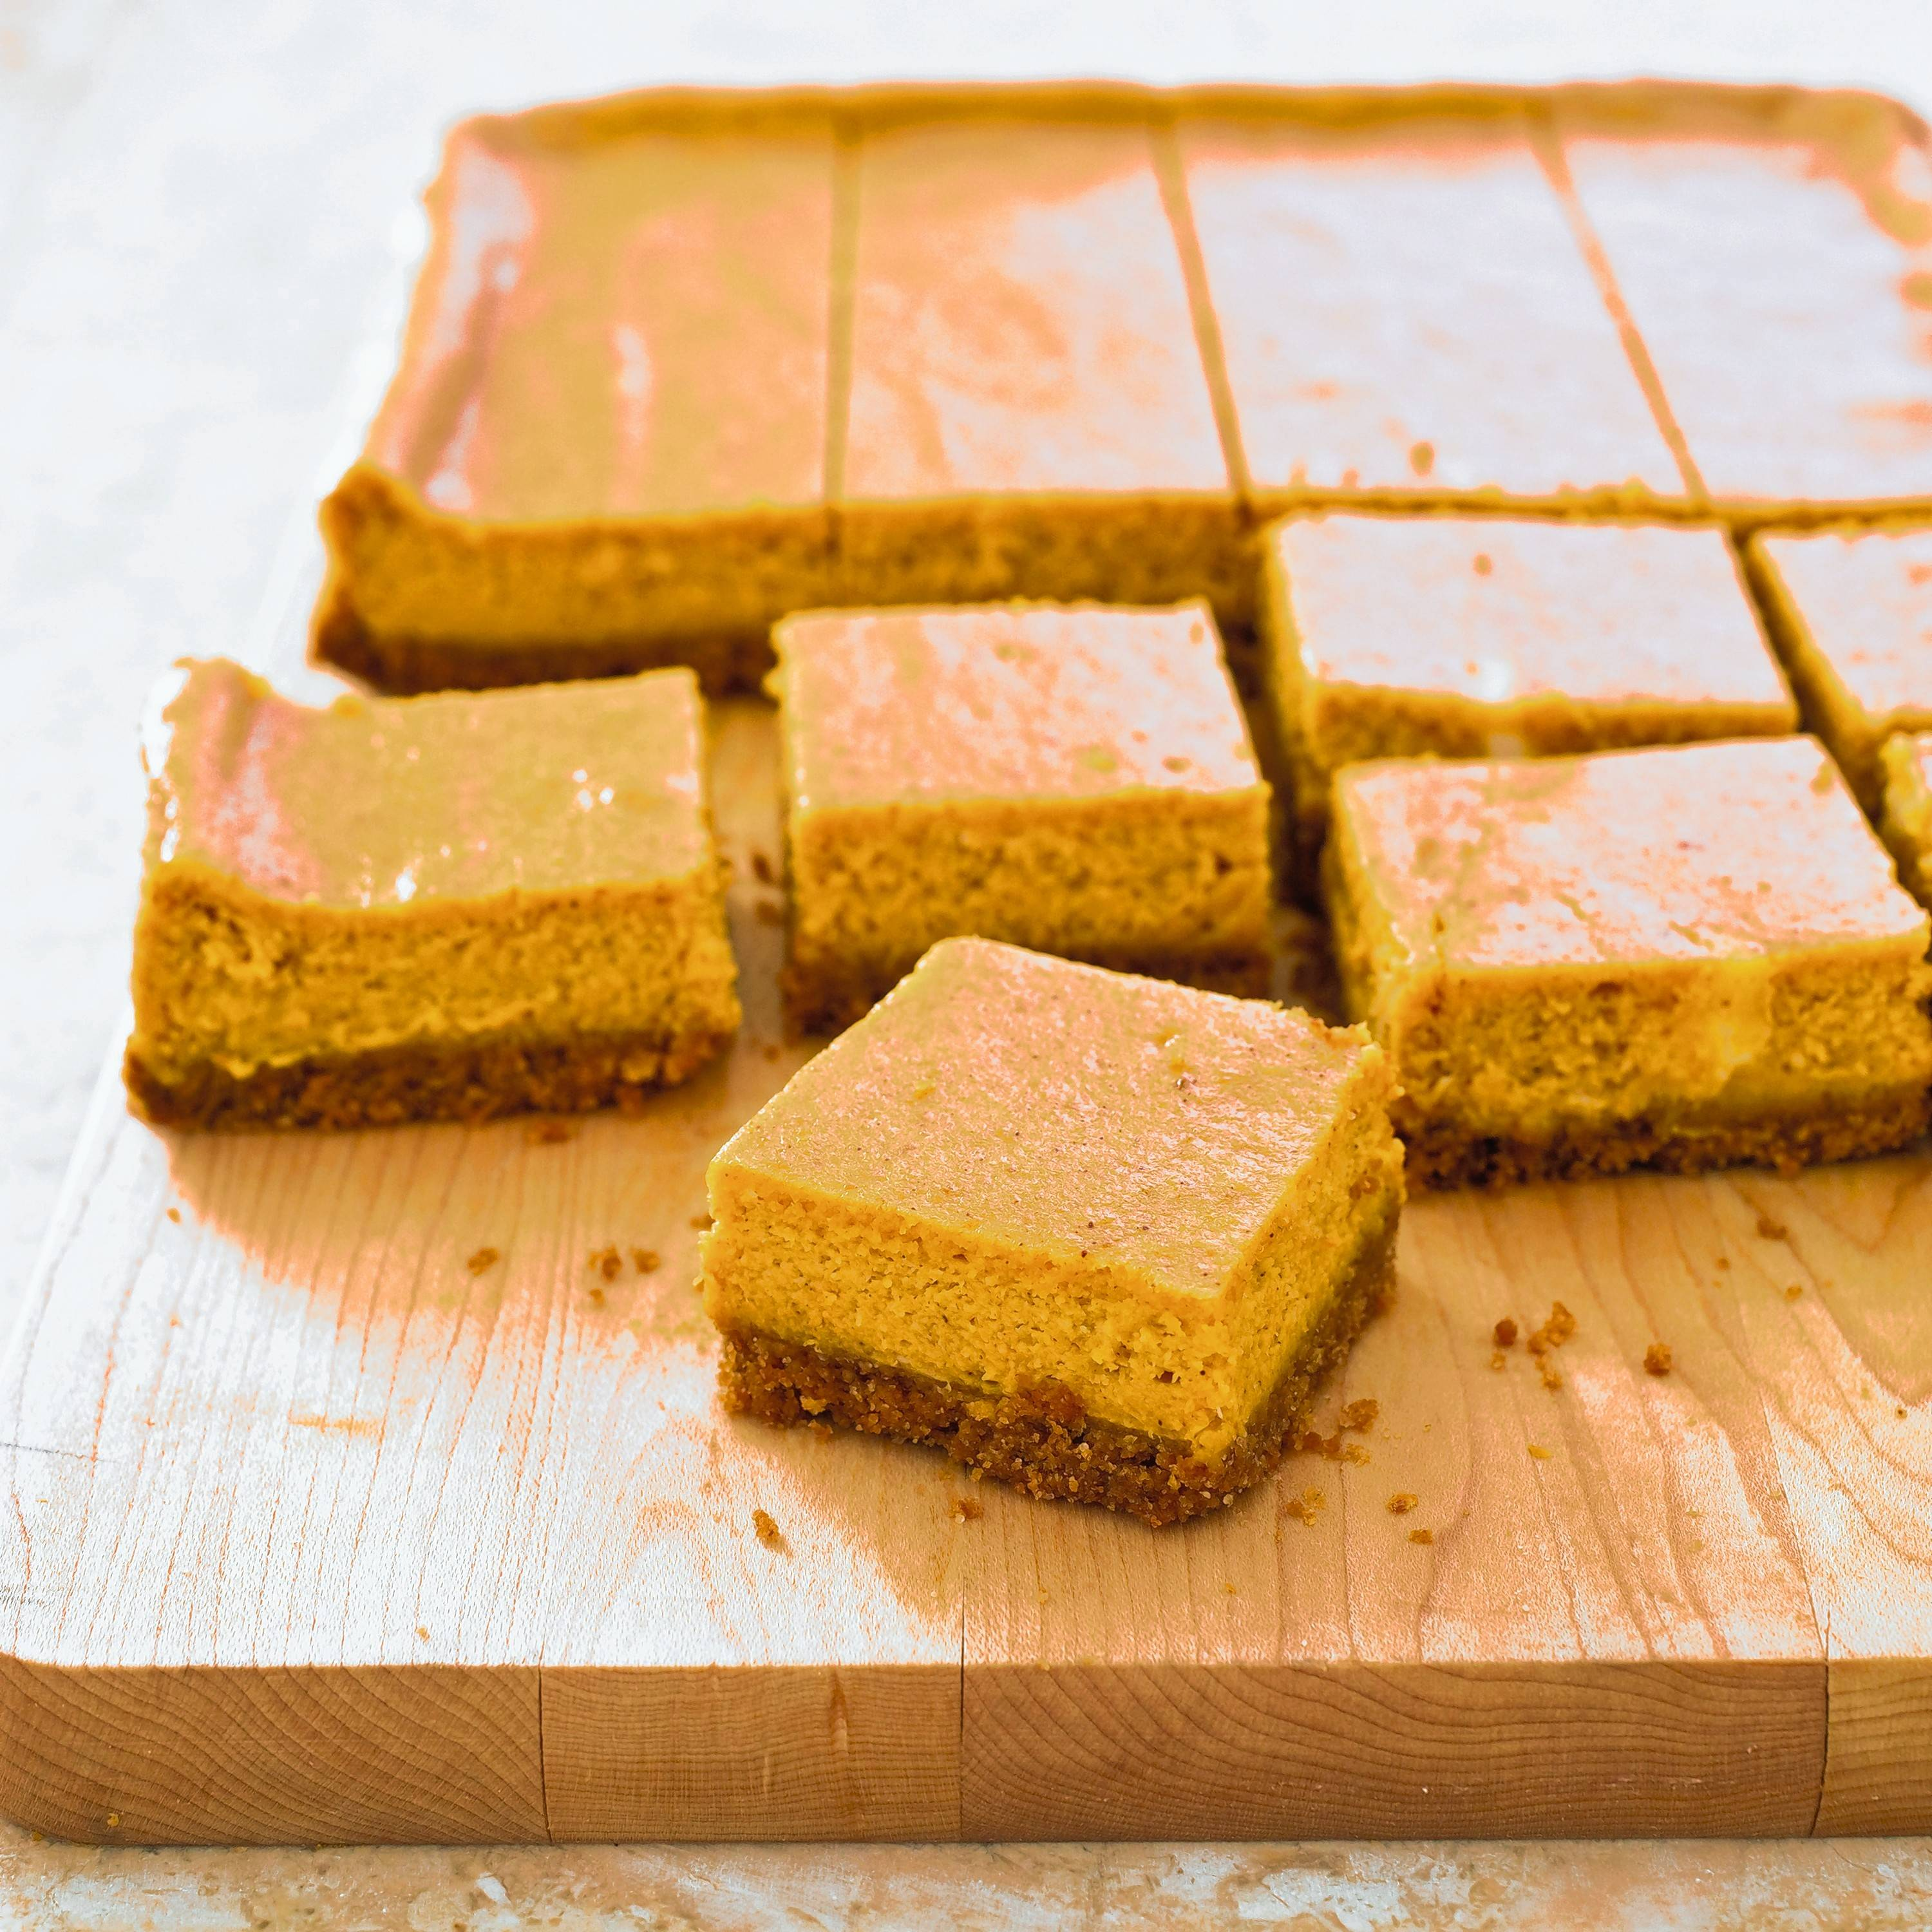 Pumpkin cheesecake bars are a portable, seasonal treat.